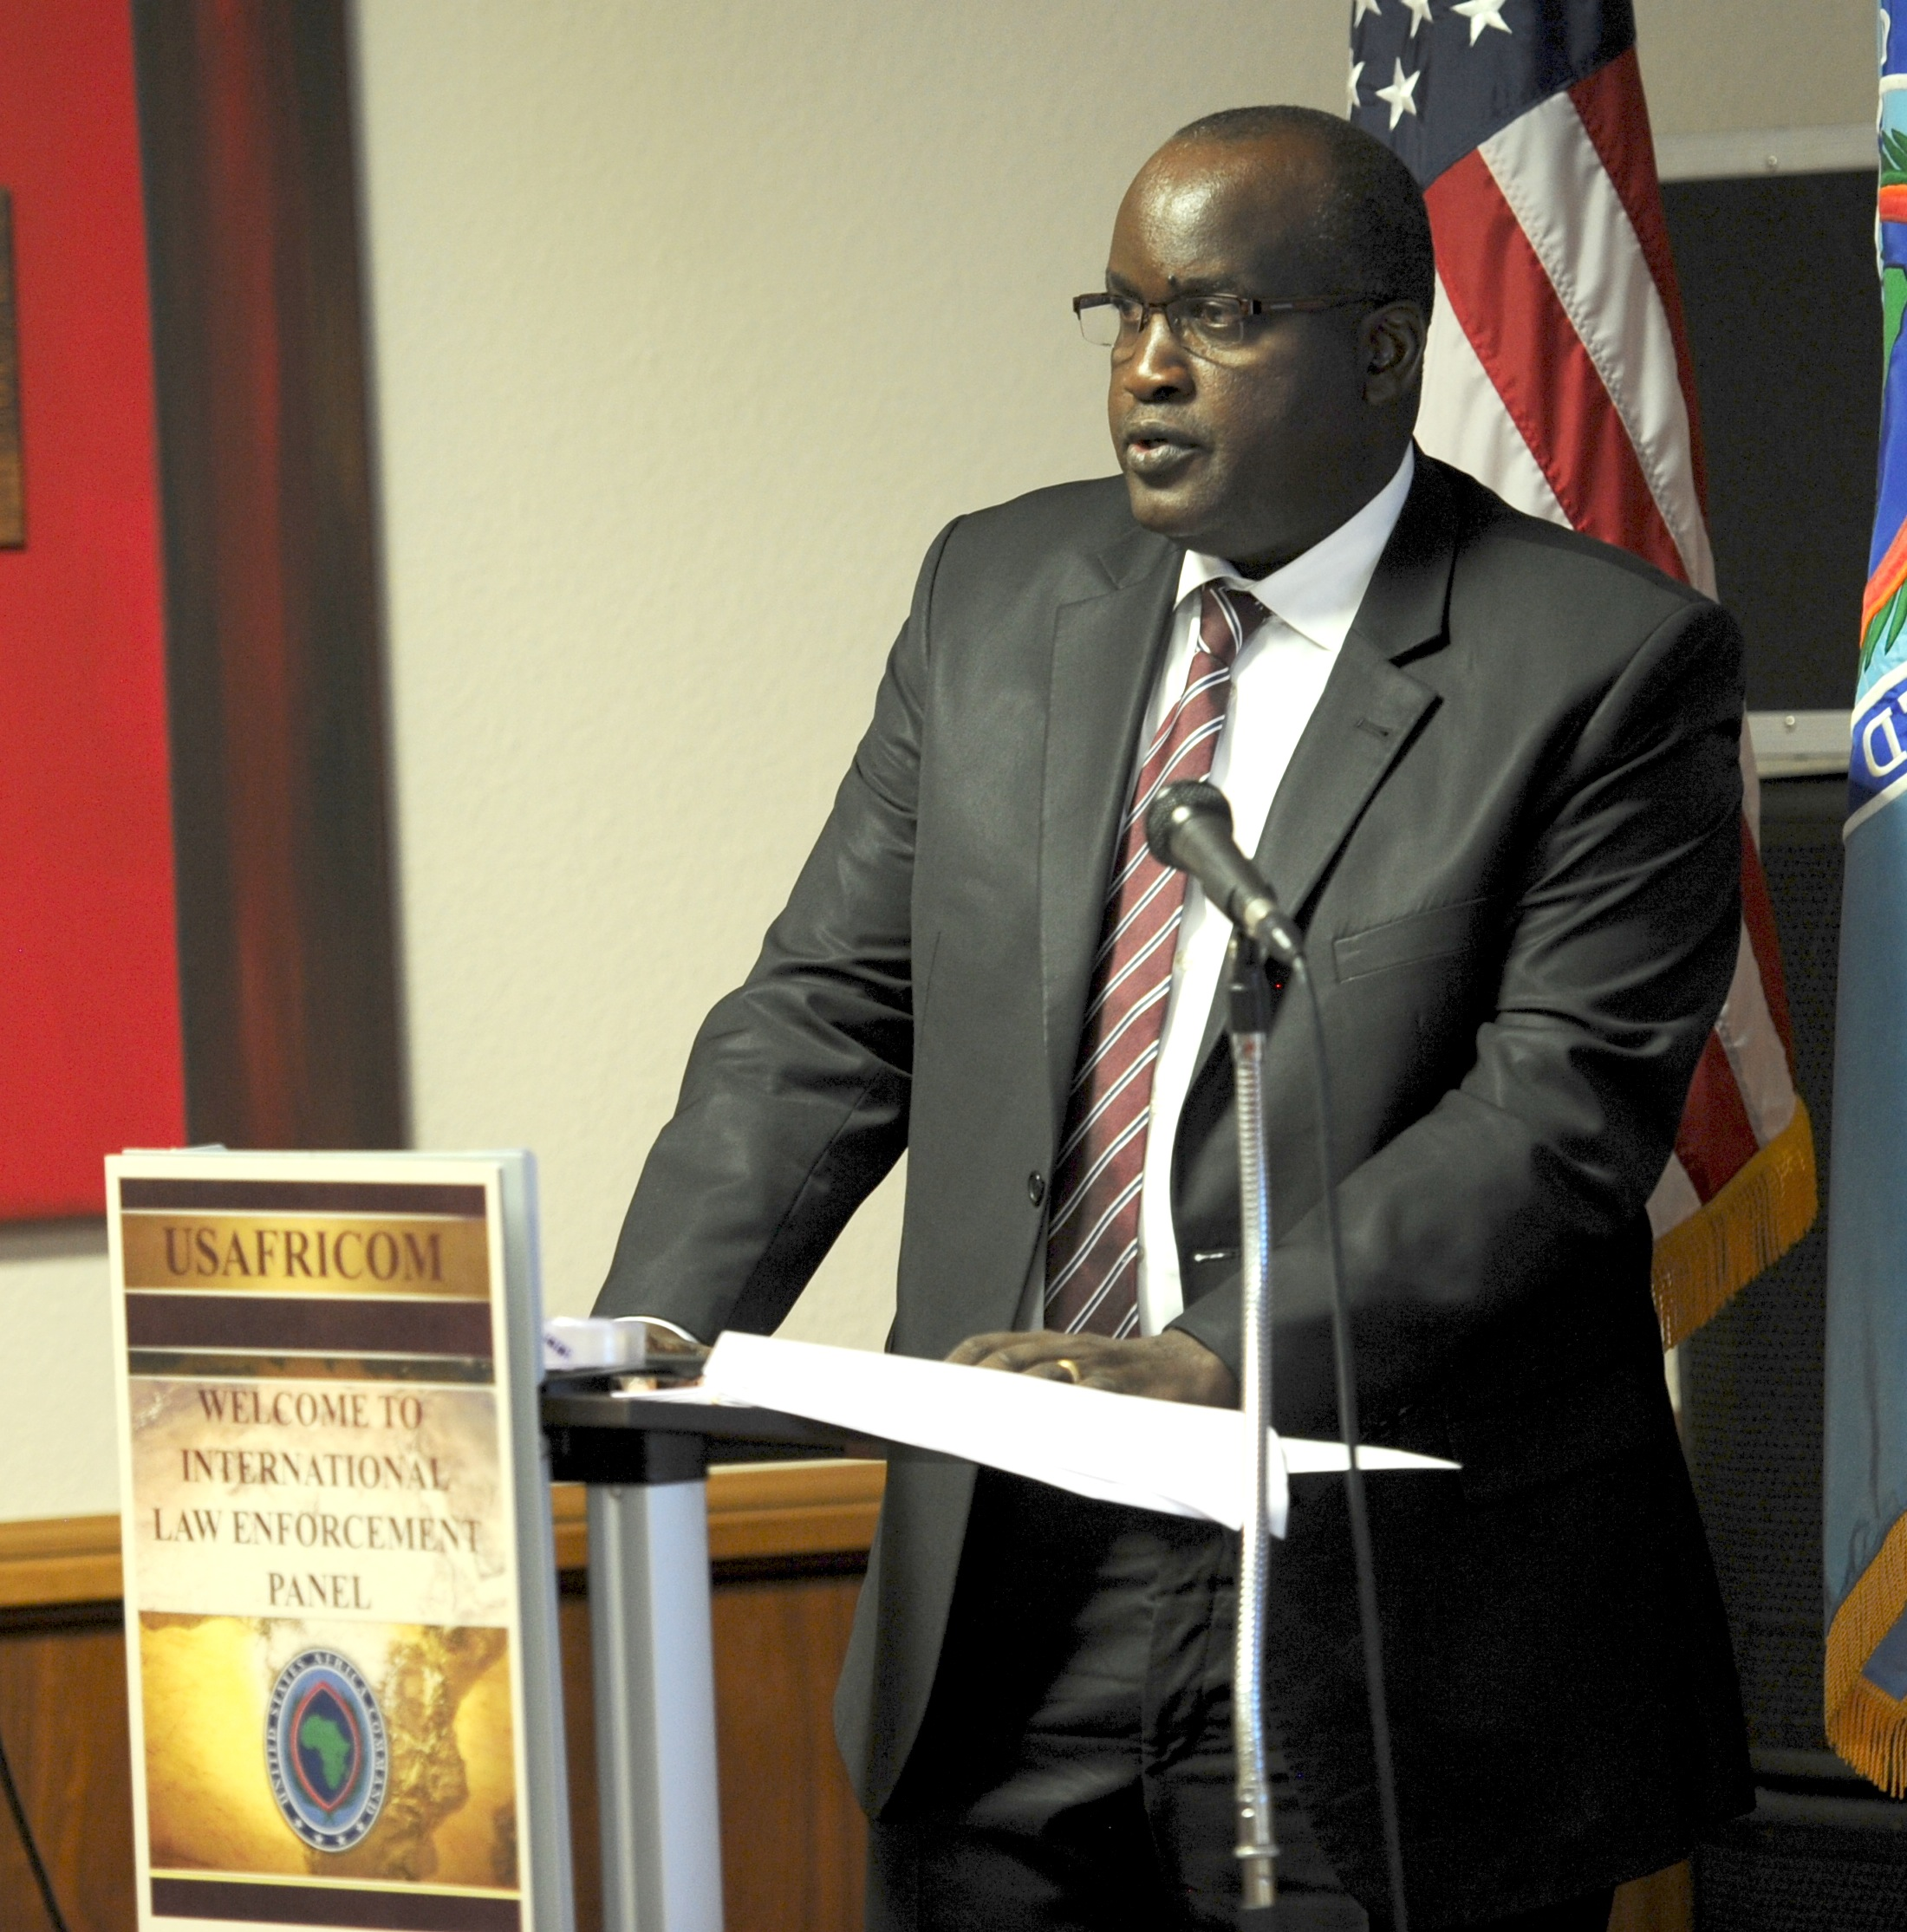 Gedion Kimilu, Head of Bureau for Eastern Africa, International Criminal Police Organization, Kenya, speaks to attendees of U.S. Africa Command's first International Law Enforcement Panel, July 11, 2017, at the U.S. Army Garrison, Stuttgart, Germany. The purpose of the event was to increase understanding of how intergovernmental organizations coordinate law enforcement activities in Africa, while identifying opportunities for collaboration and information sharing between the command and international law enforcement partners.  (U.S. AFRICOM photo by U.S. Army Staff Sgt. Grady Jones/Released)